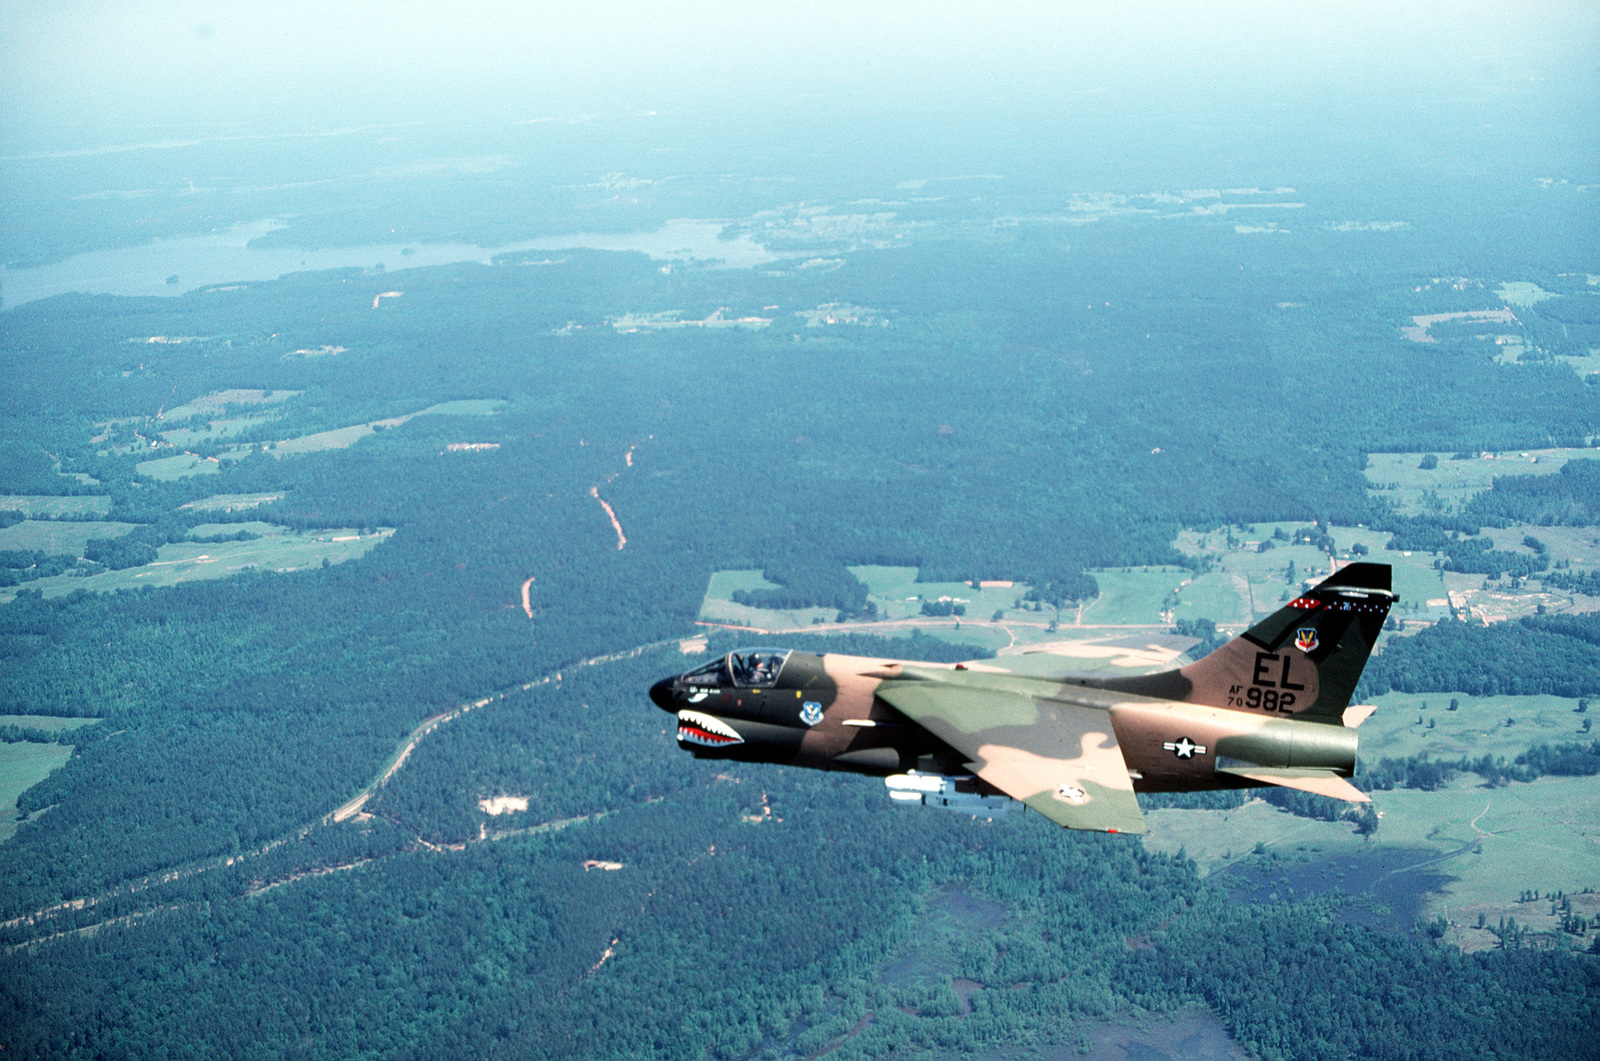 AN air-to-air left side view of an A-7D Corsair II aircraft over a range. Two AGM-65 Maverick missiles and one auxiliary fuel tank are on each wing. The aircraft is assigned to the 76th Tactical Fighter Squadron, 23rd Tactical Fighter Wing